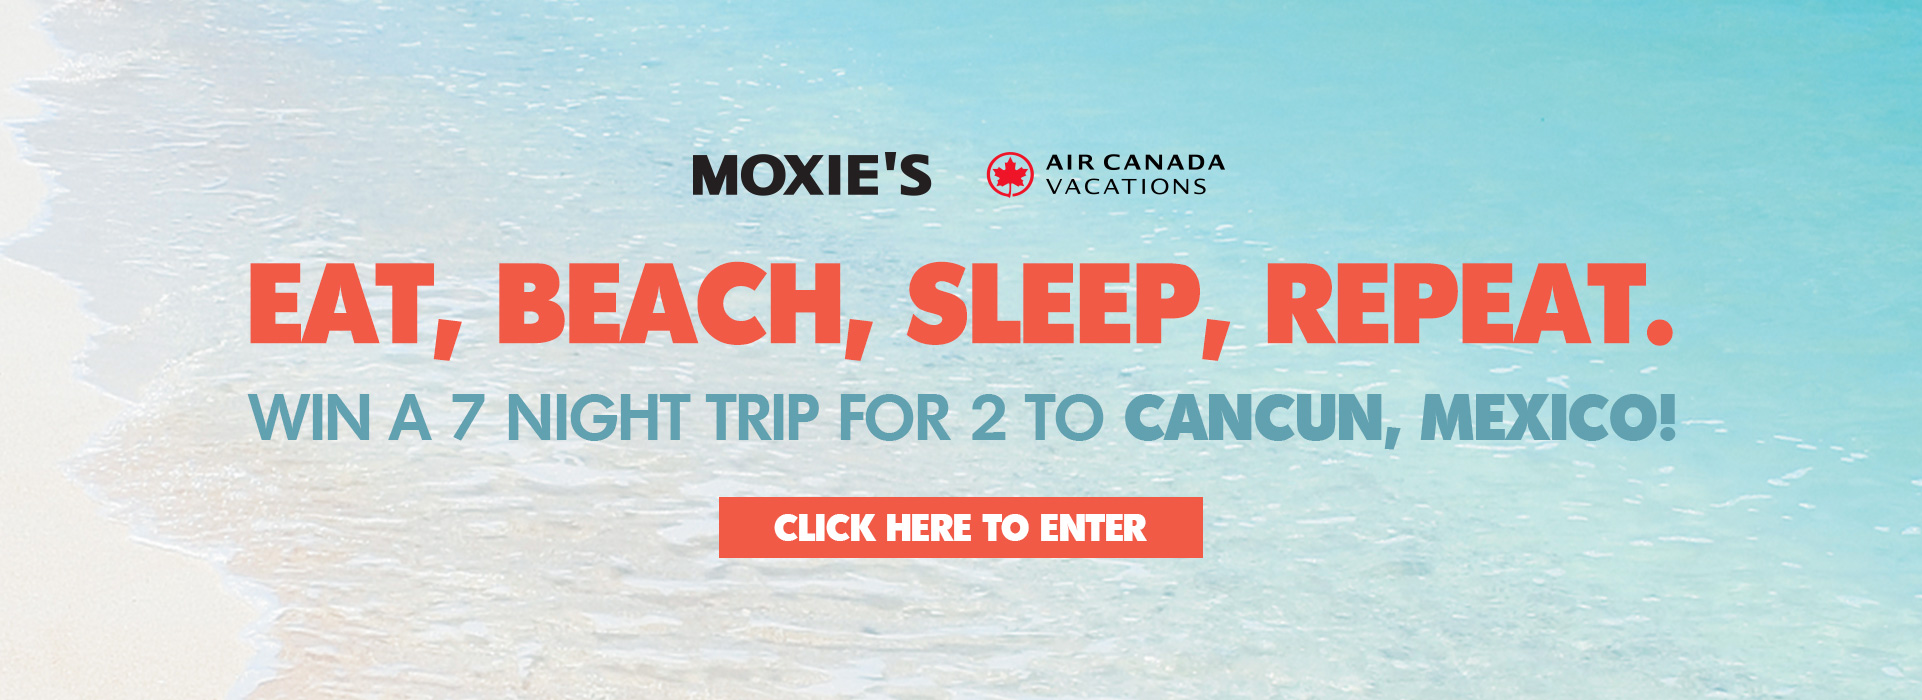 ENTER TO WIN A 7 NIGHT TRIP FOR 2 TO CANCUN, MEXICO!